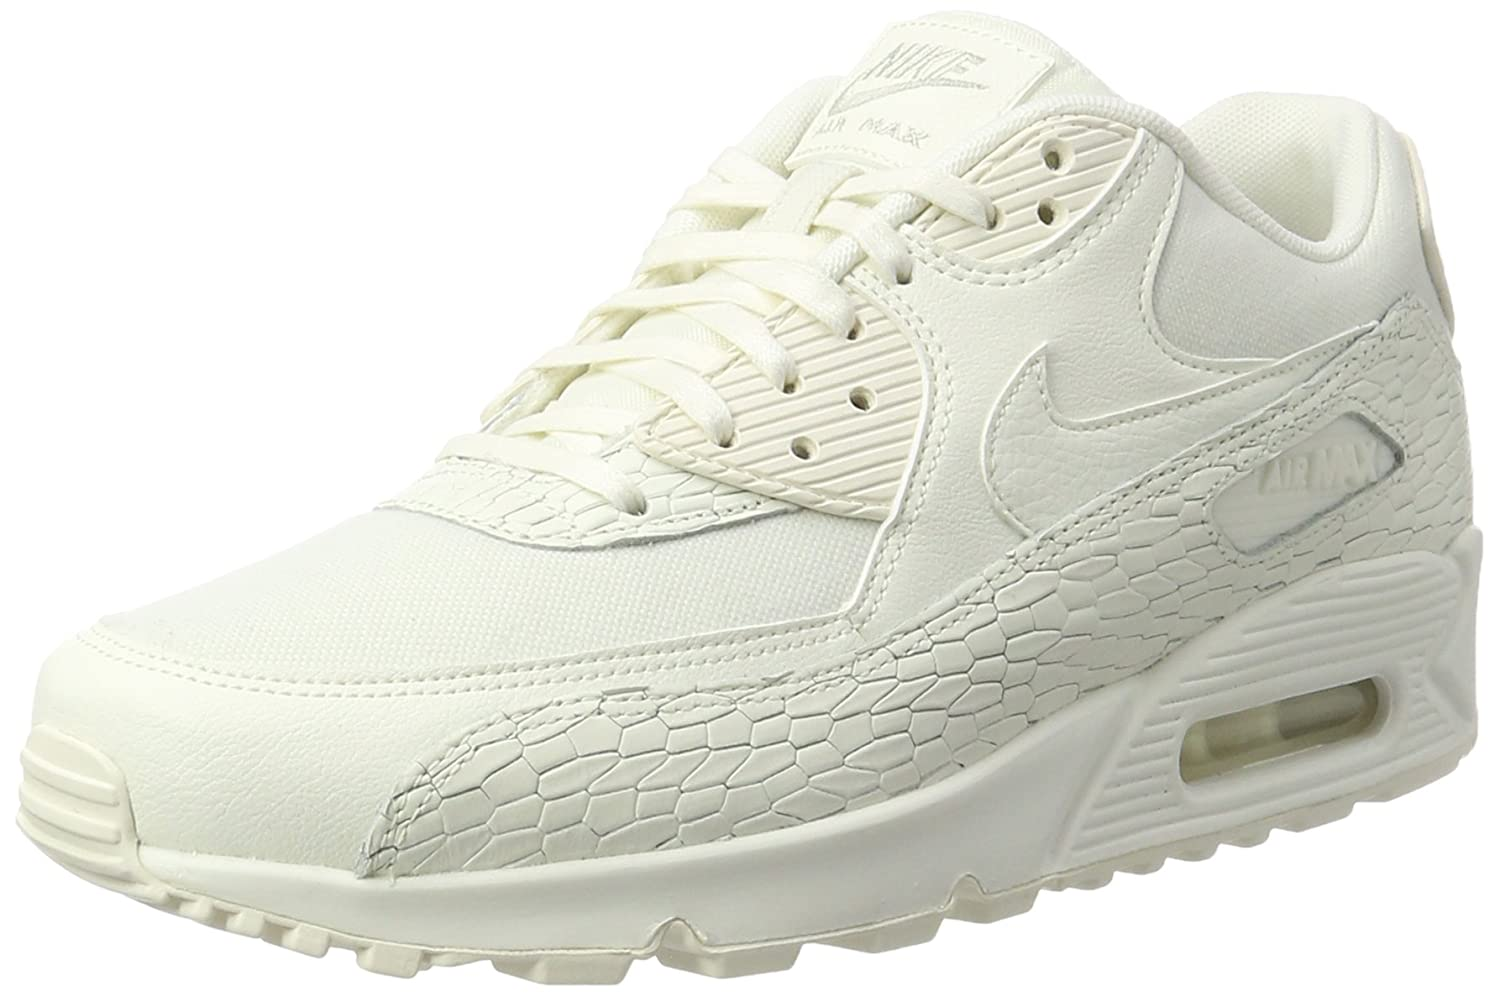 Nike Air Max 90 PRM Sneaker For Women